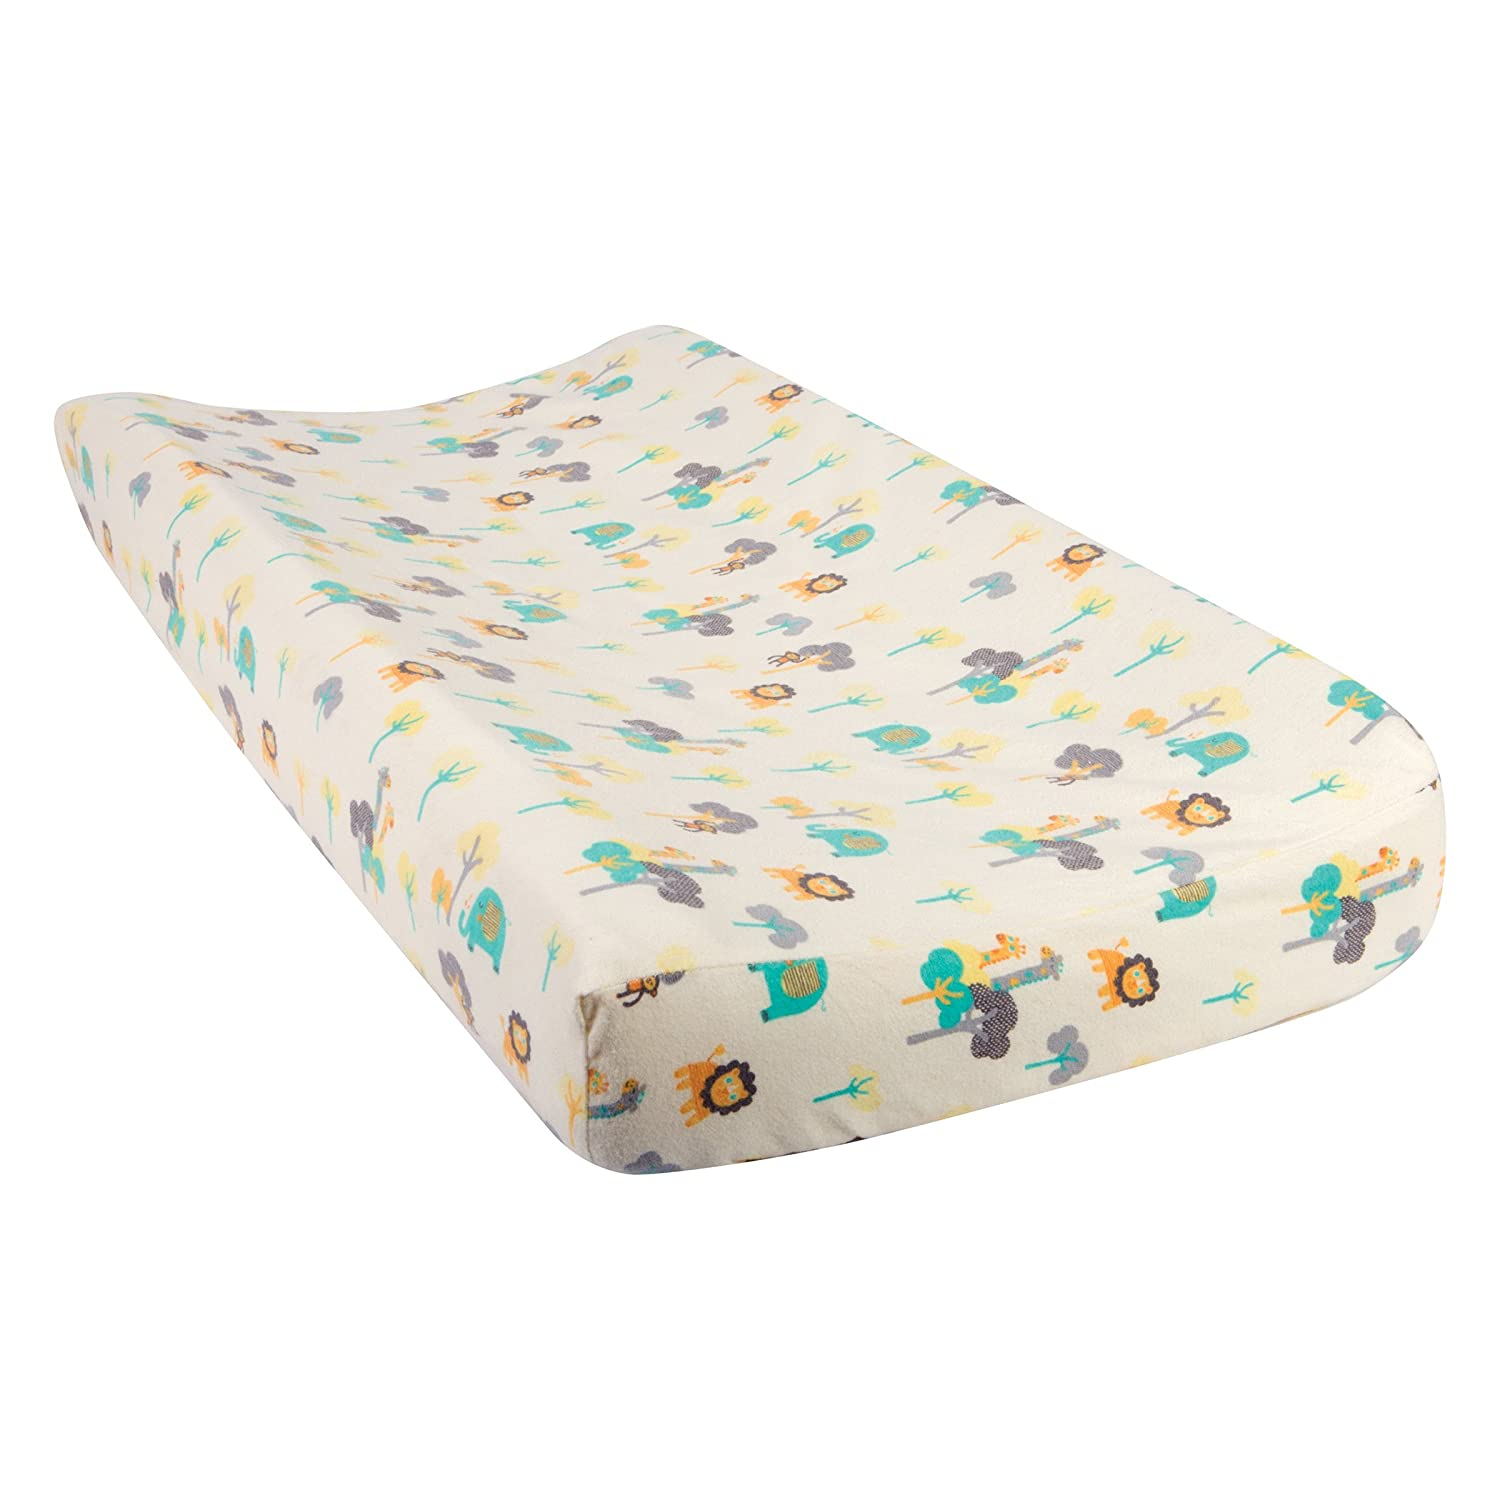 Trend Lab Lullaby Jungle Deluxe Flannel Changing Pad Cover 101385